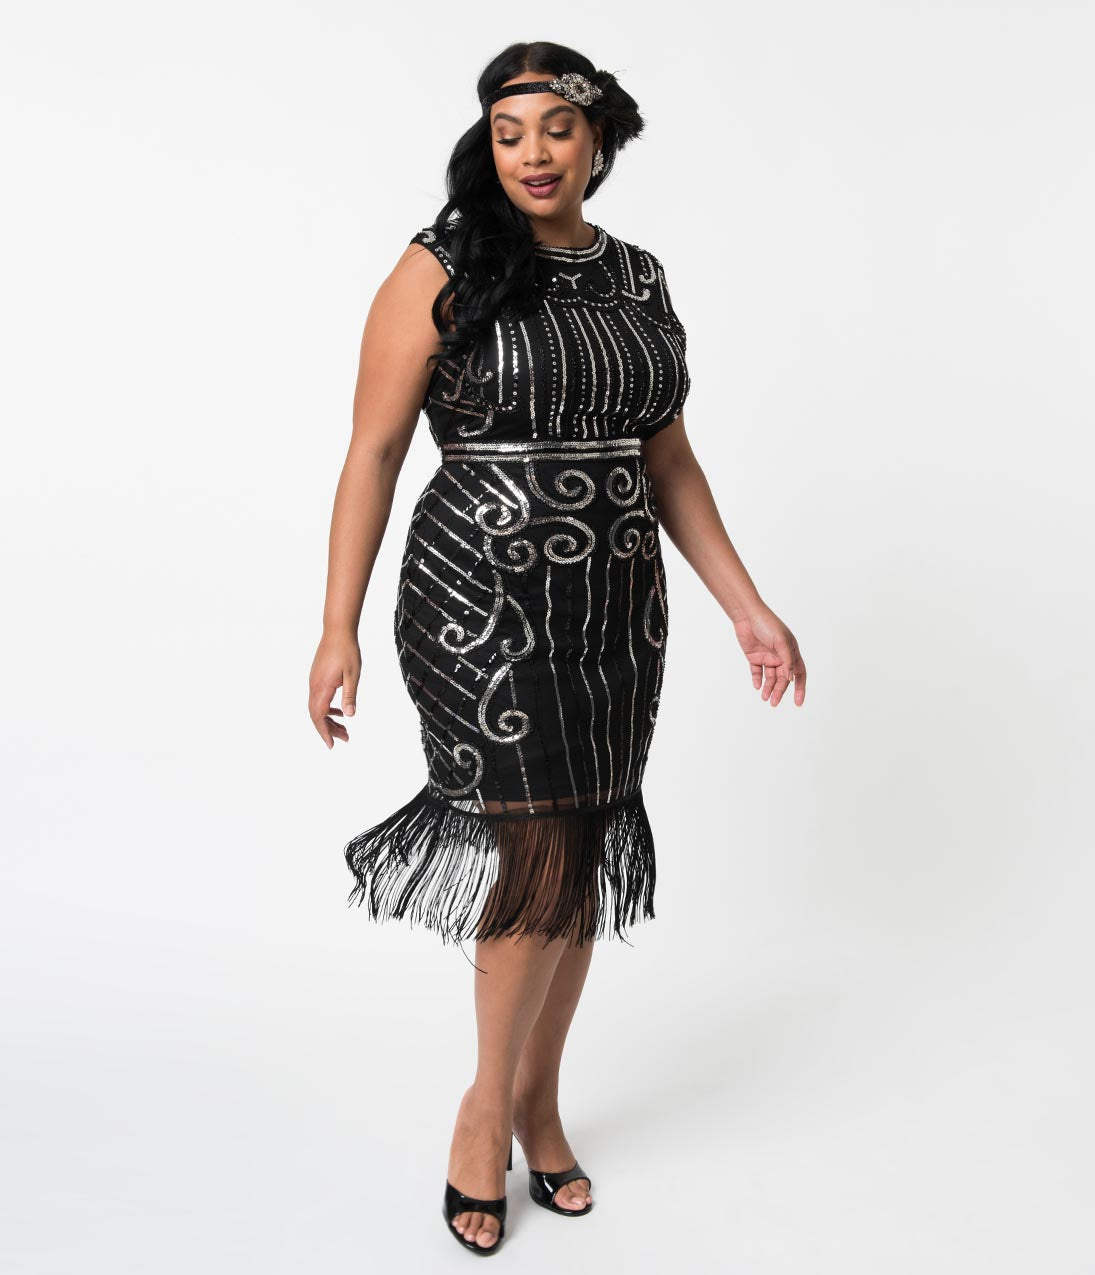 f2e8e754db4 Unique Vintage Plus Size 1920s Style Black & Silver Beaded Avignon Flapper  Dress